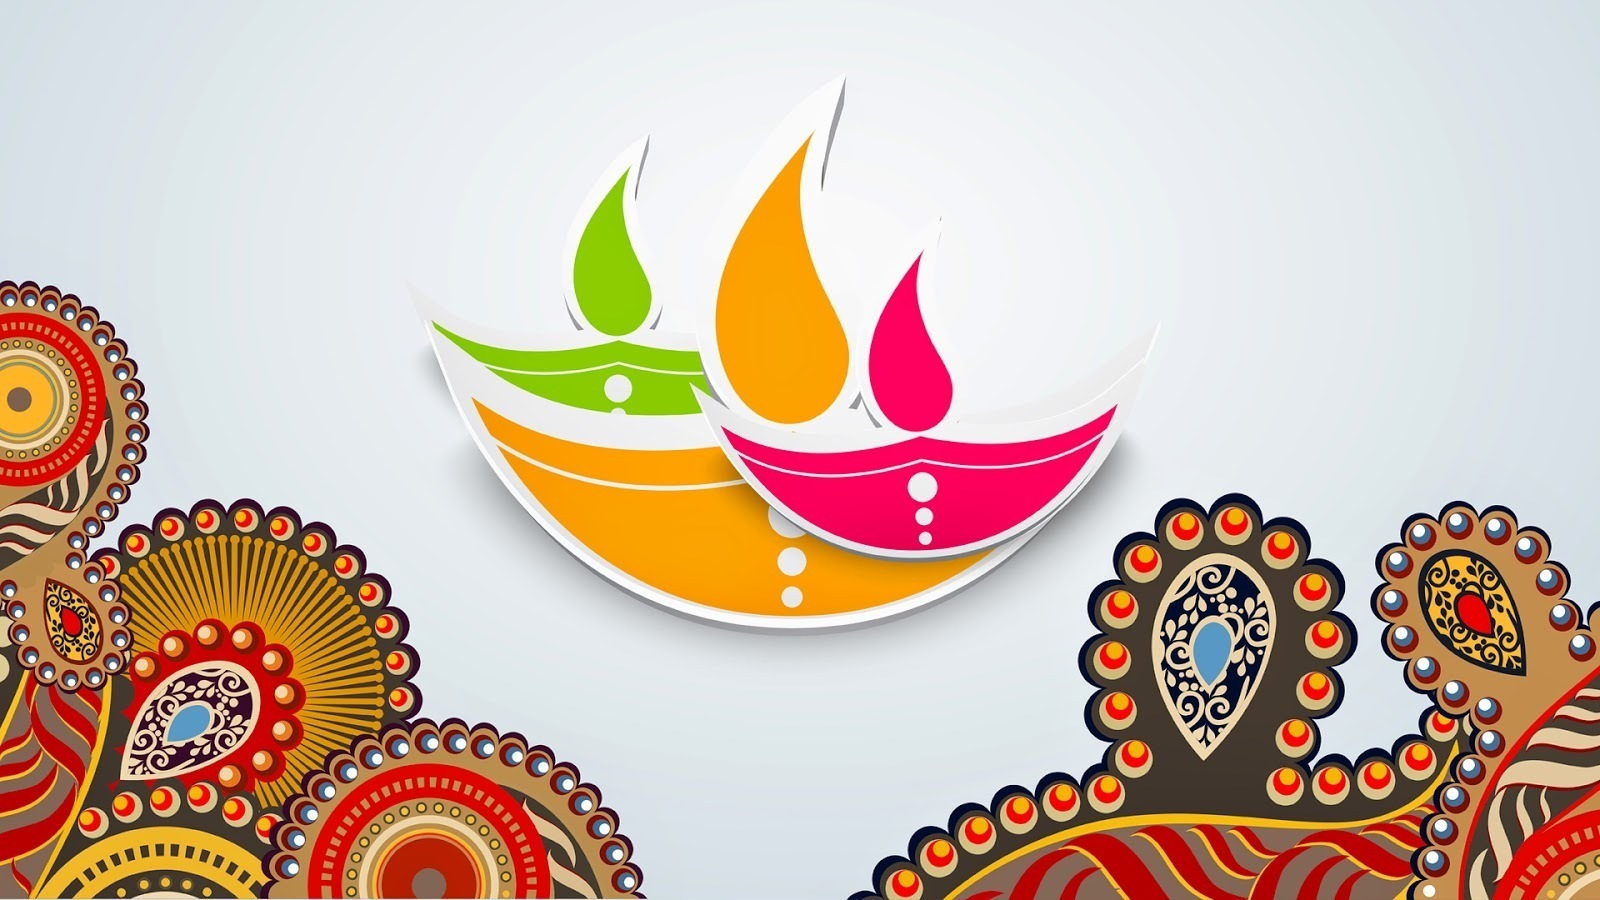 Happy Diwali And New Year Wallpapers: Diwali Wallpapers